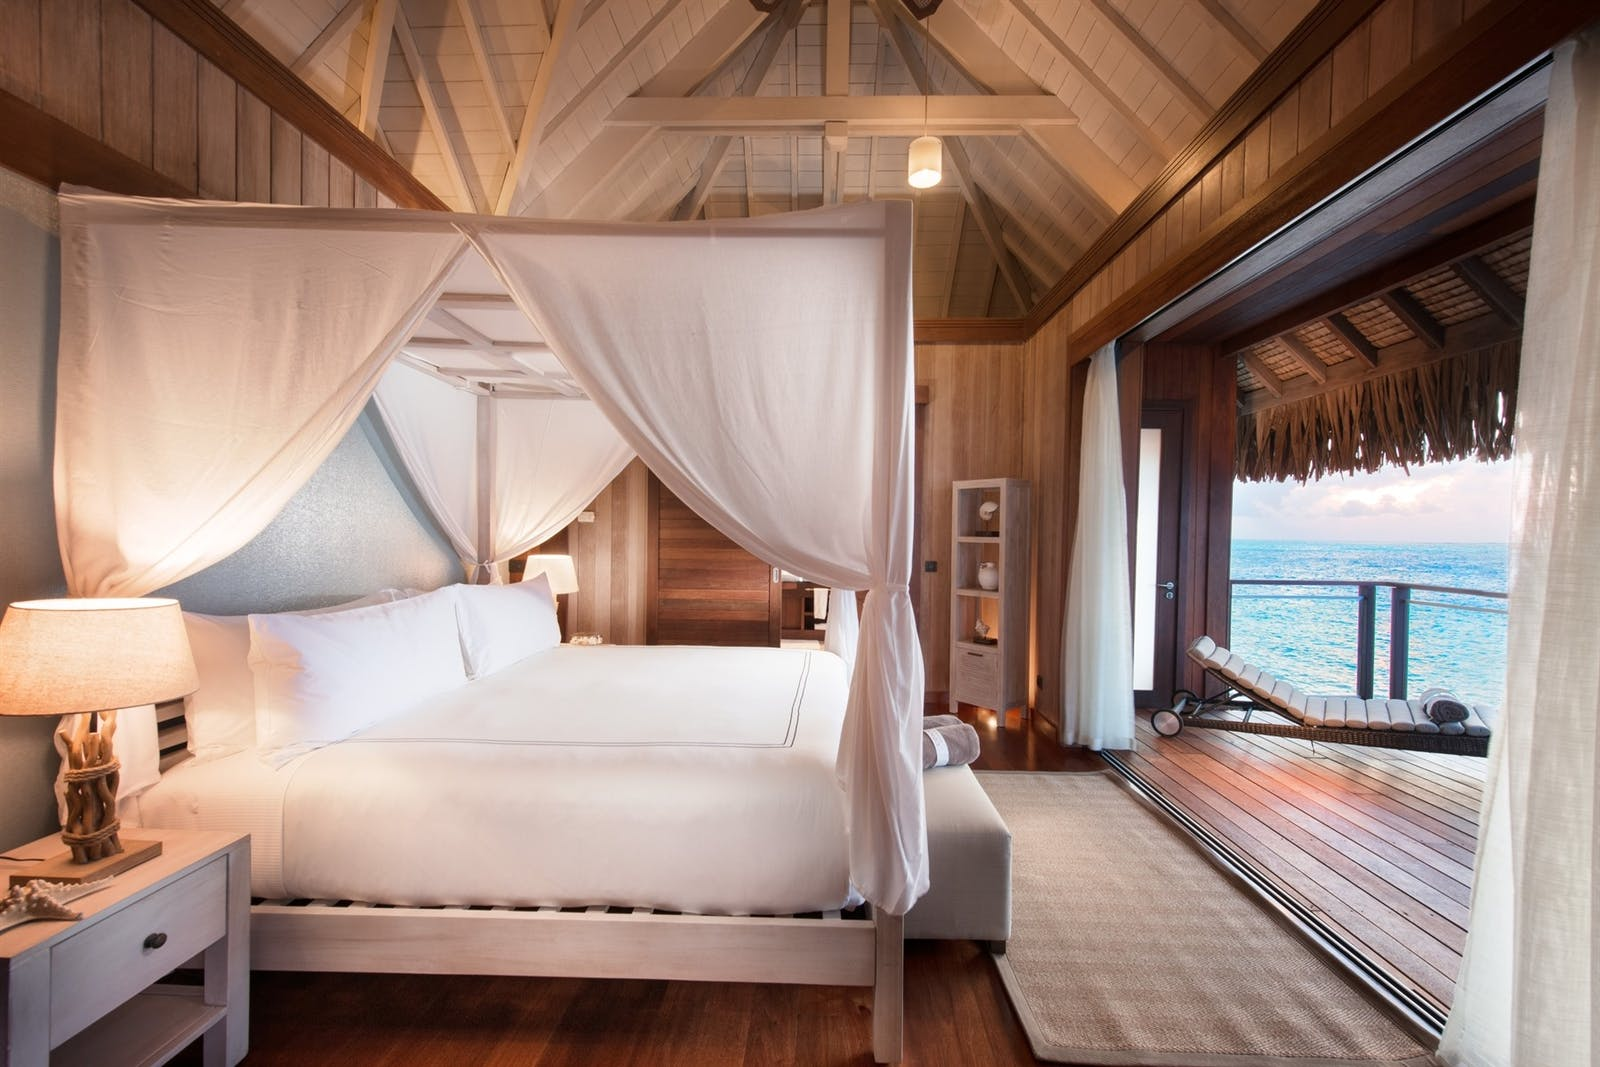 Villa Bedroom at Conrad Bora Bora Nui, French Polynesia